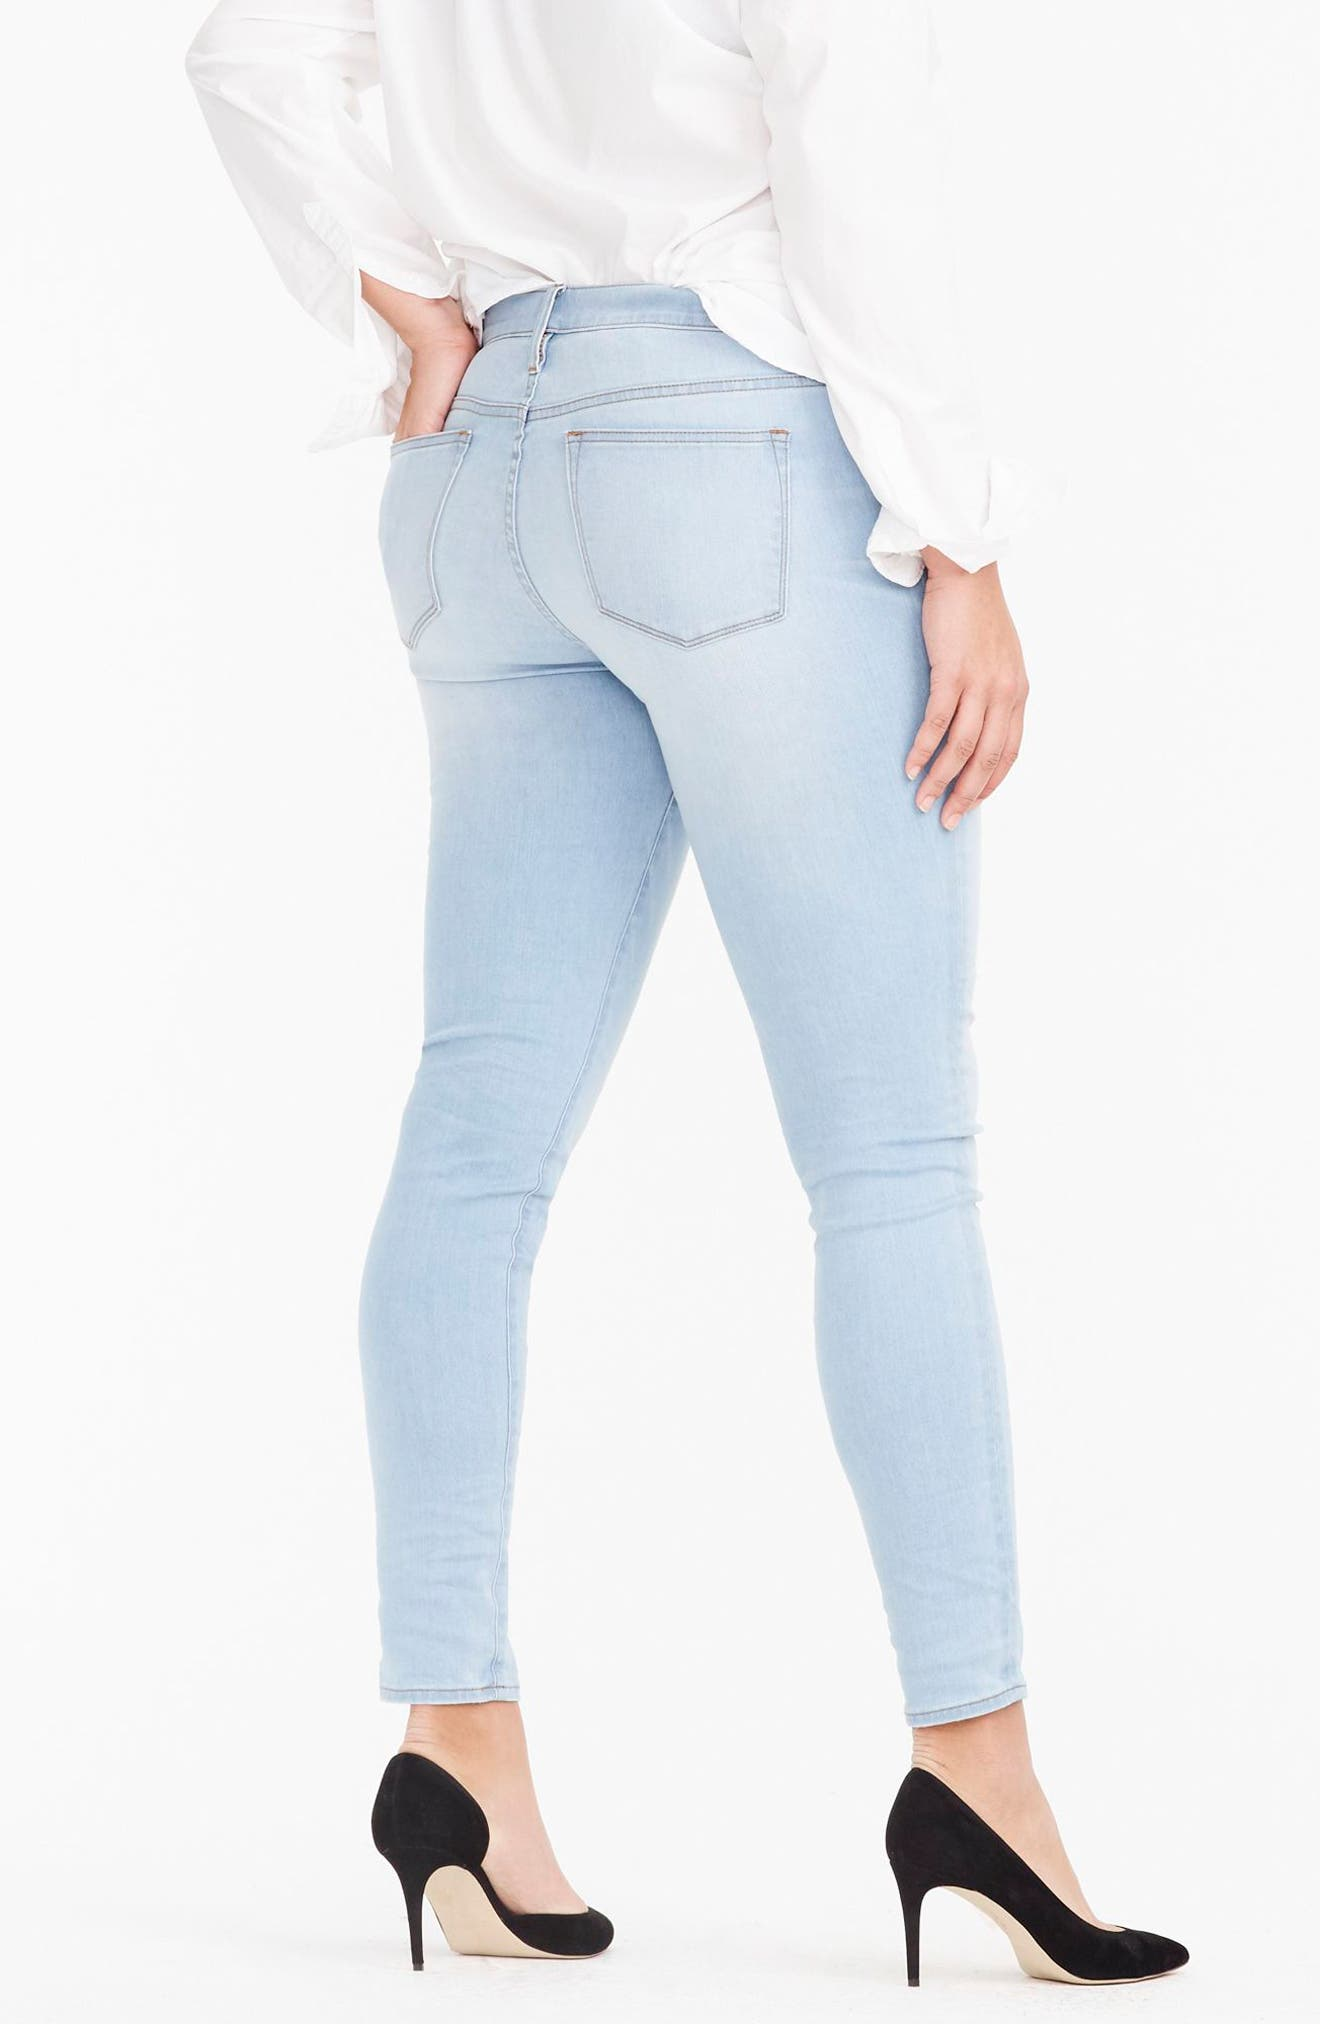 Toothpick Jeans,                             Alternate thumbnail 3, color,                             400